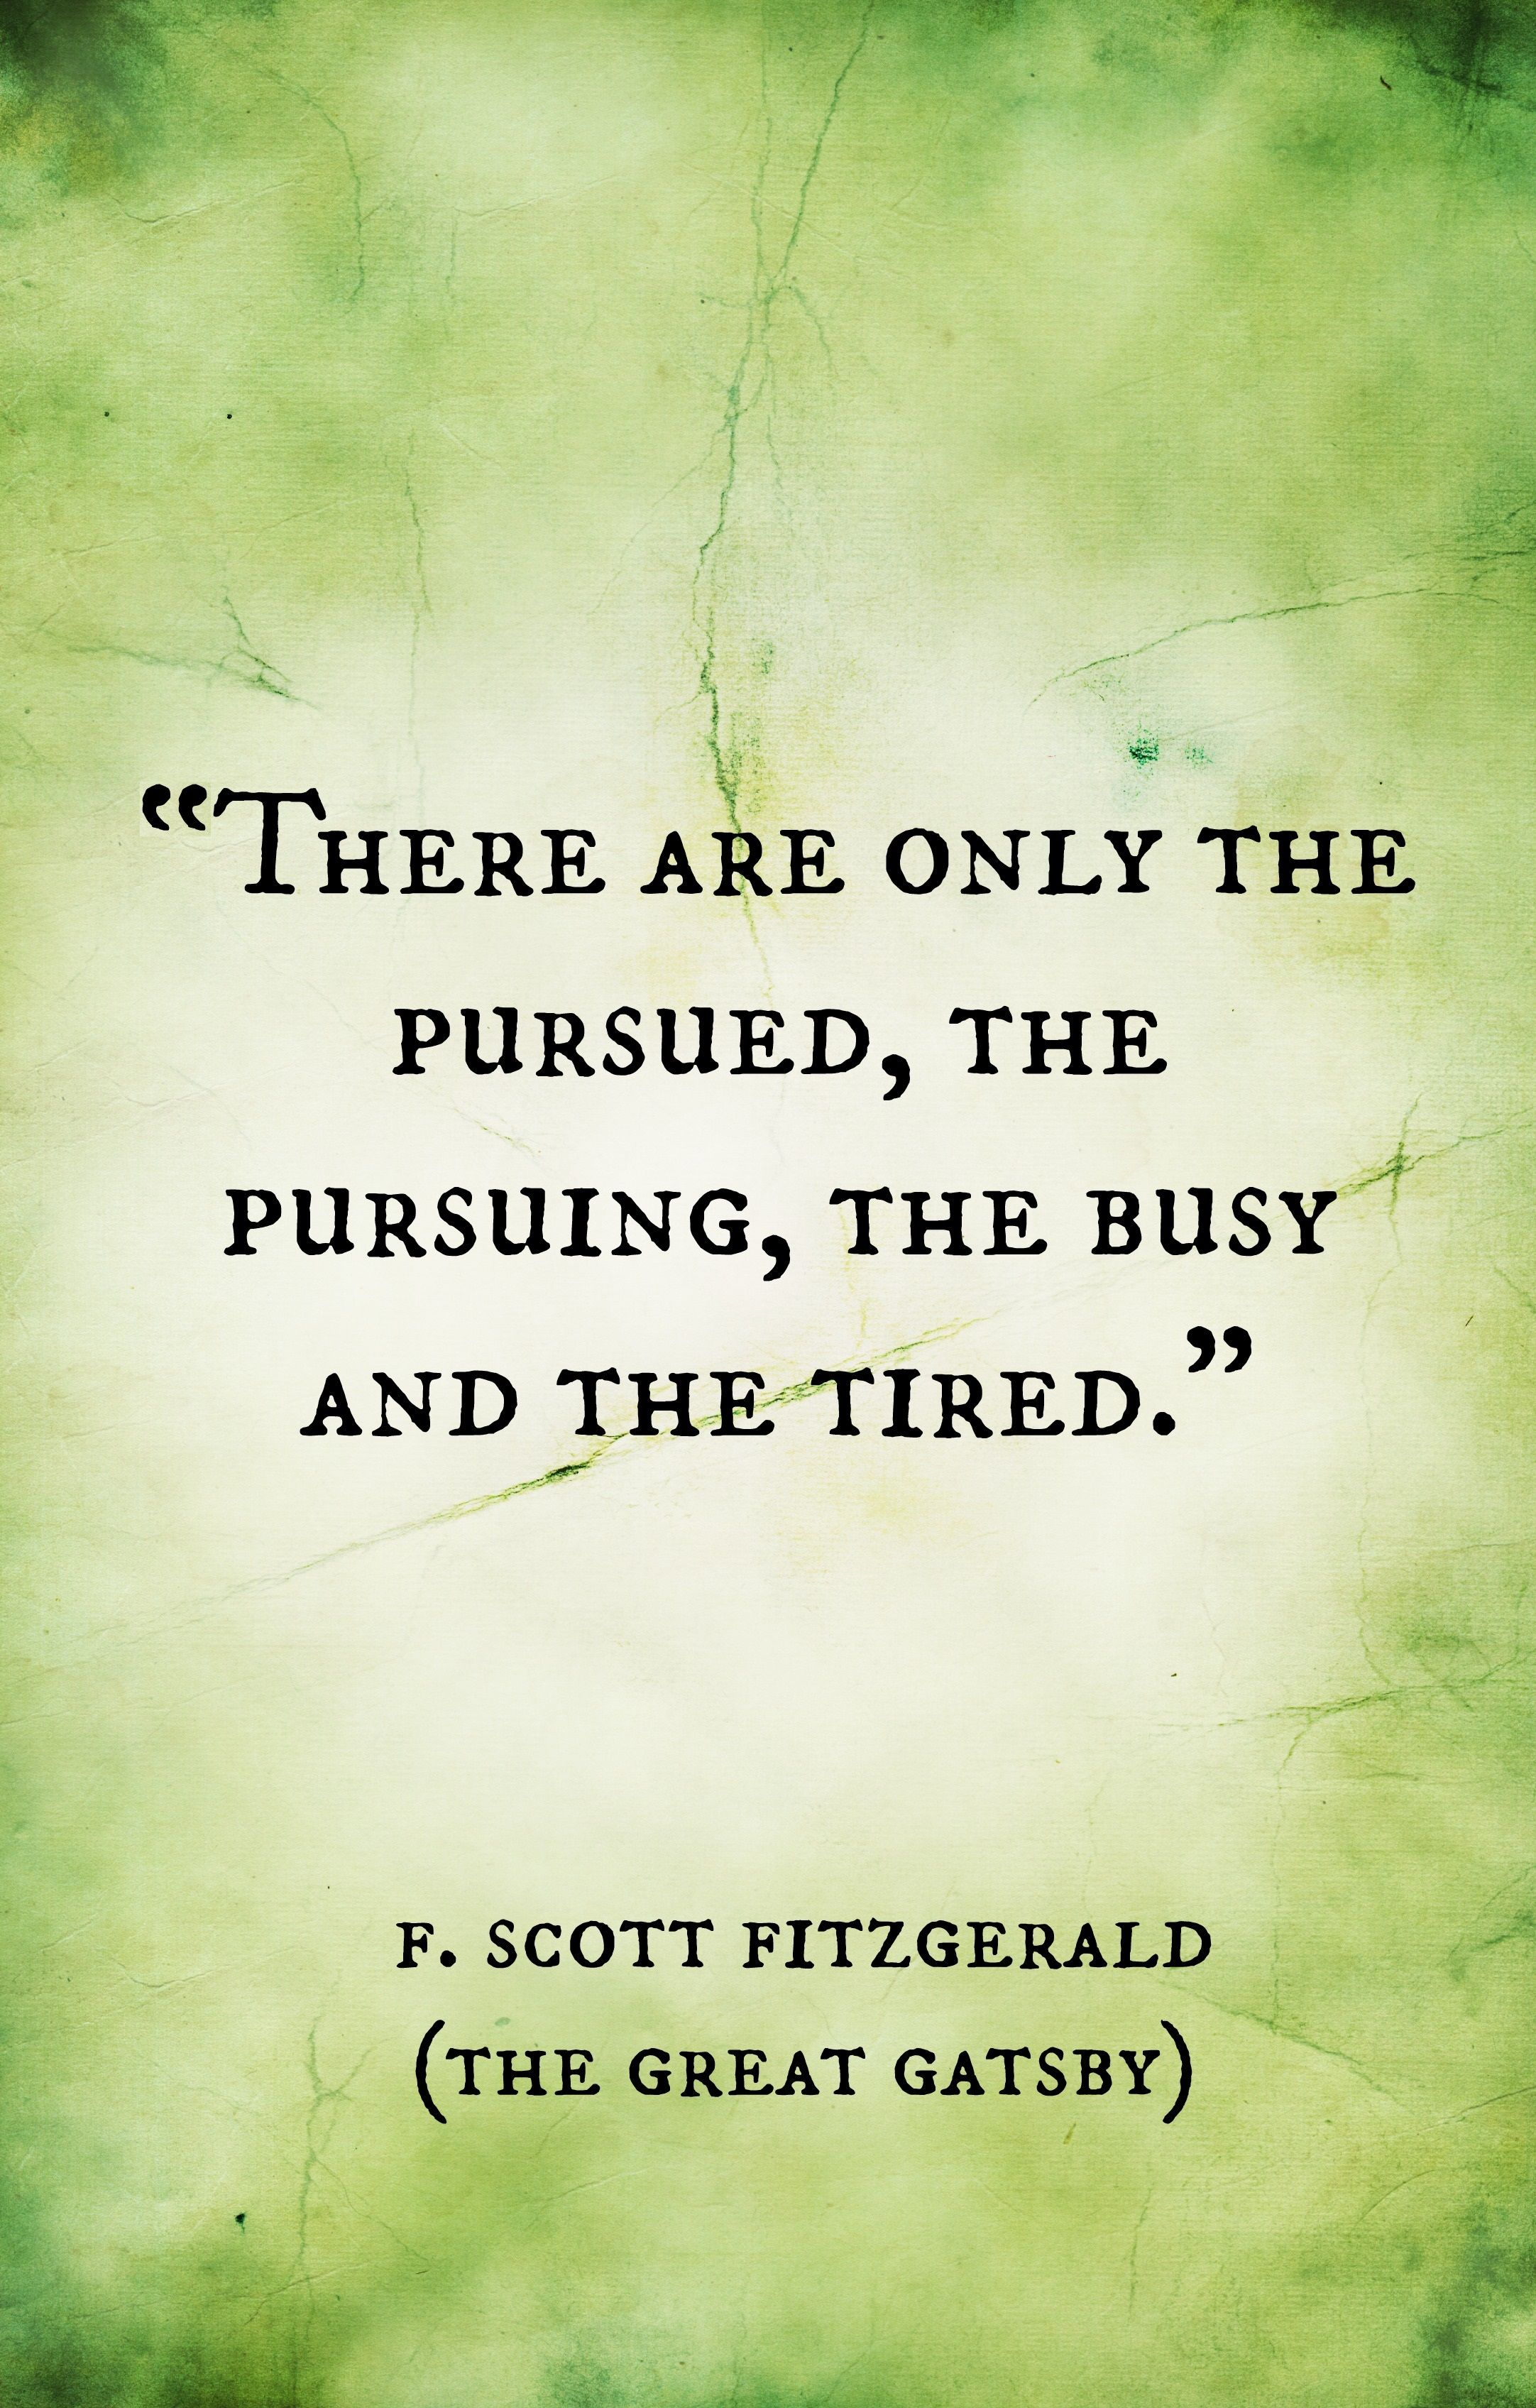 The Great Gatsby F Scott Fitzgerald Quotes